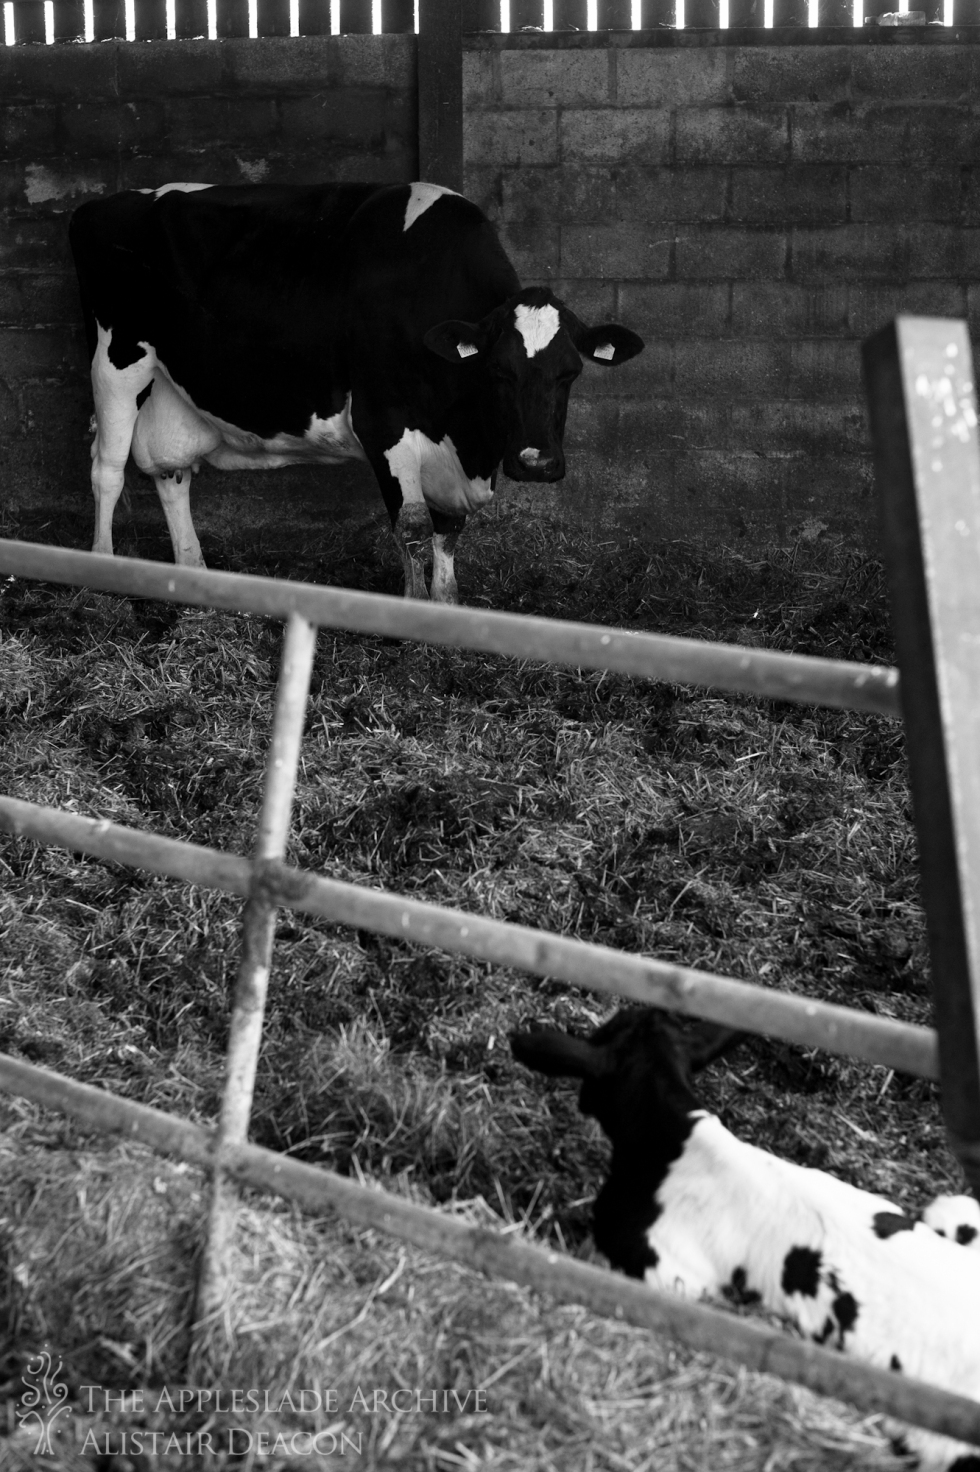 A cow looks at a recently born bullcalf, Ayles Farm, Christchurch, Dorset, 17th July 2013